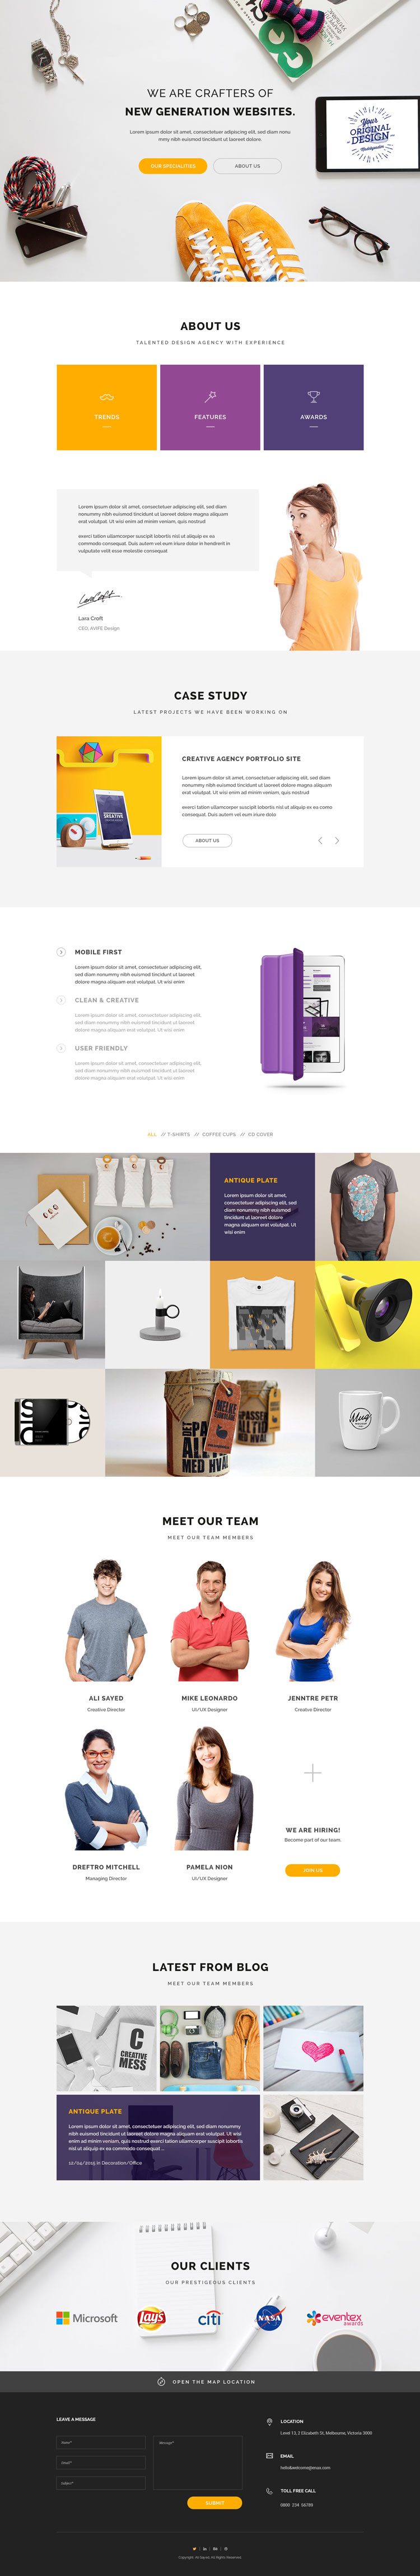 Creative-Newest-Website-Designs-for-Inspiration-003